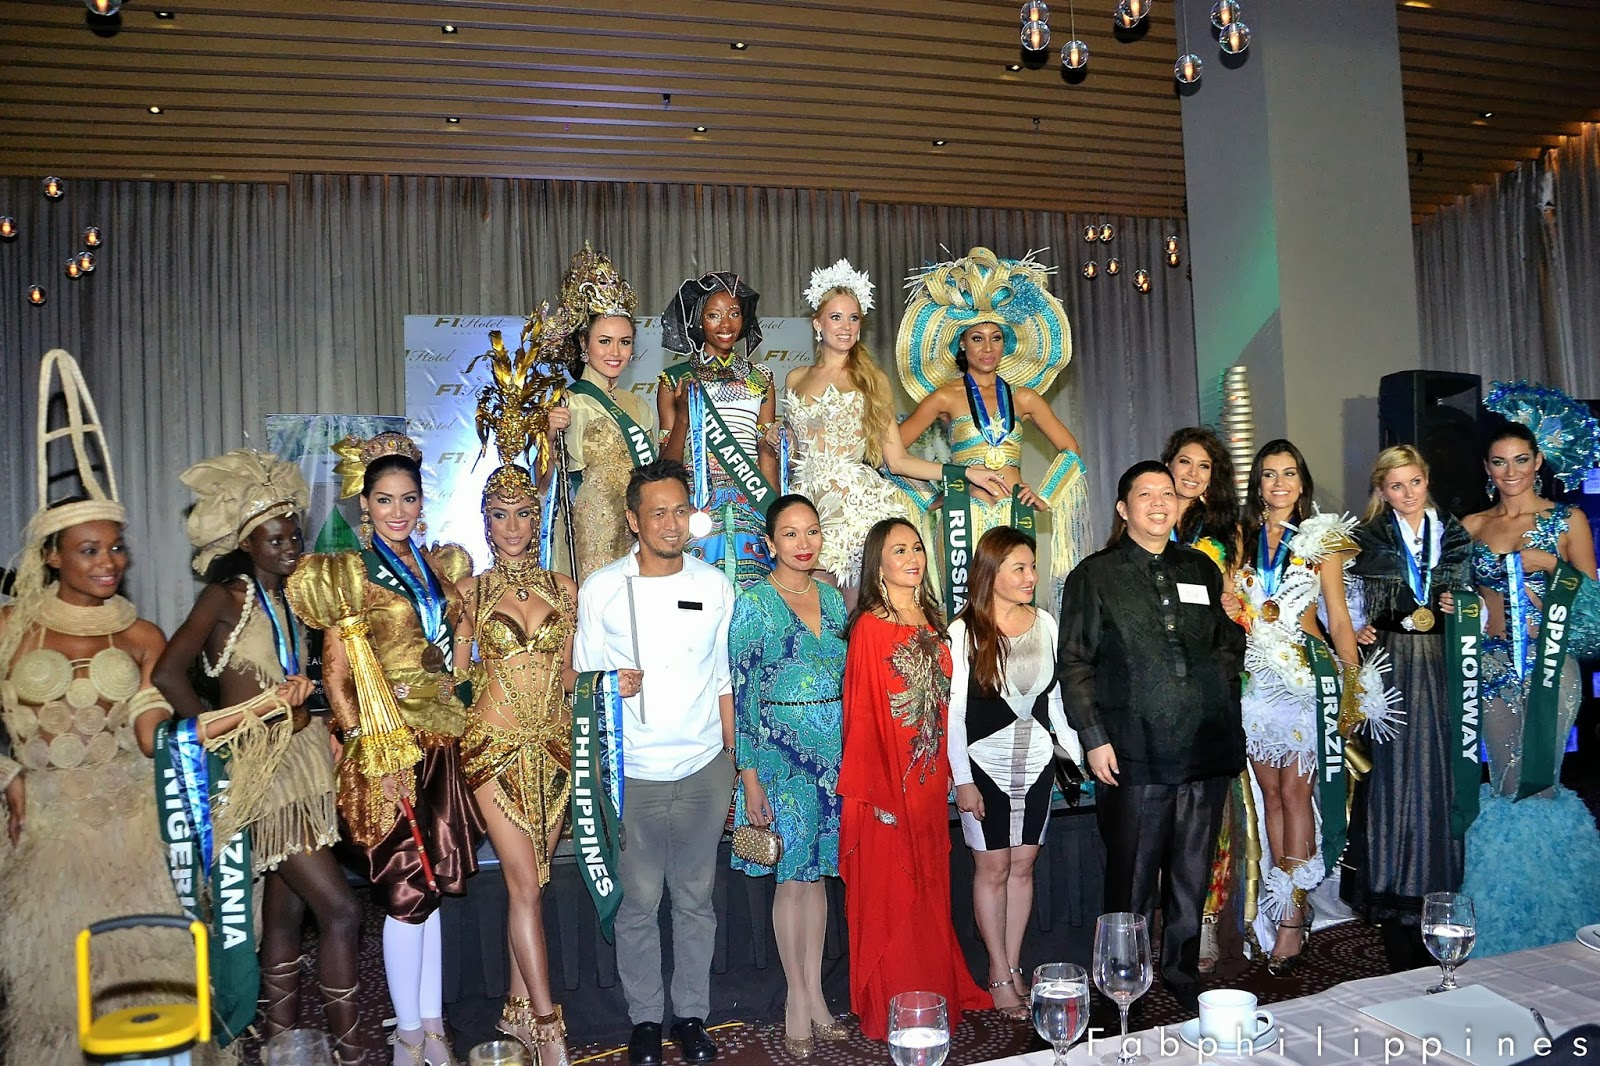 Miss Earth 2013 National Costume Winners